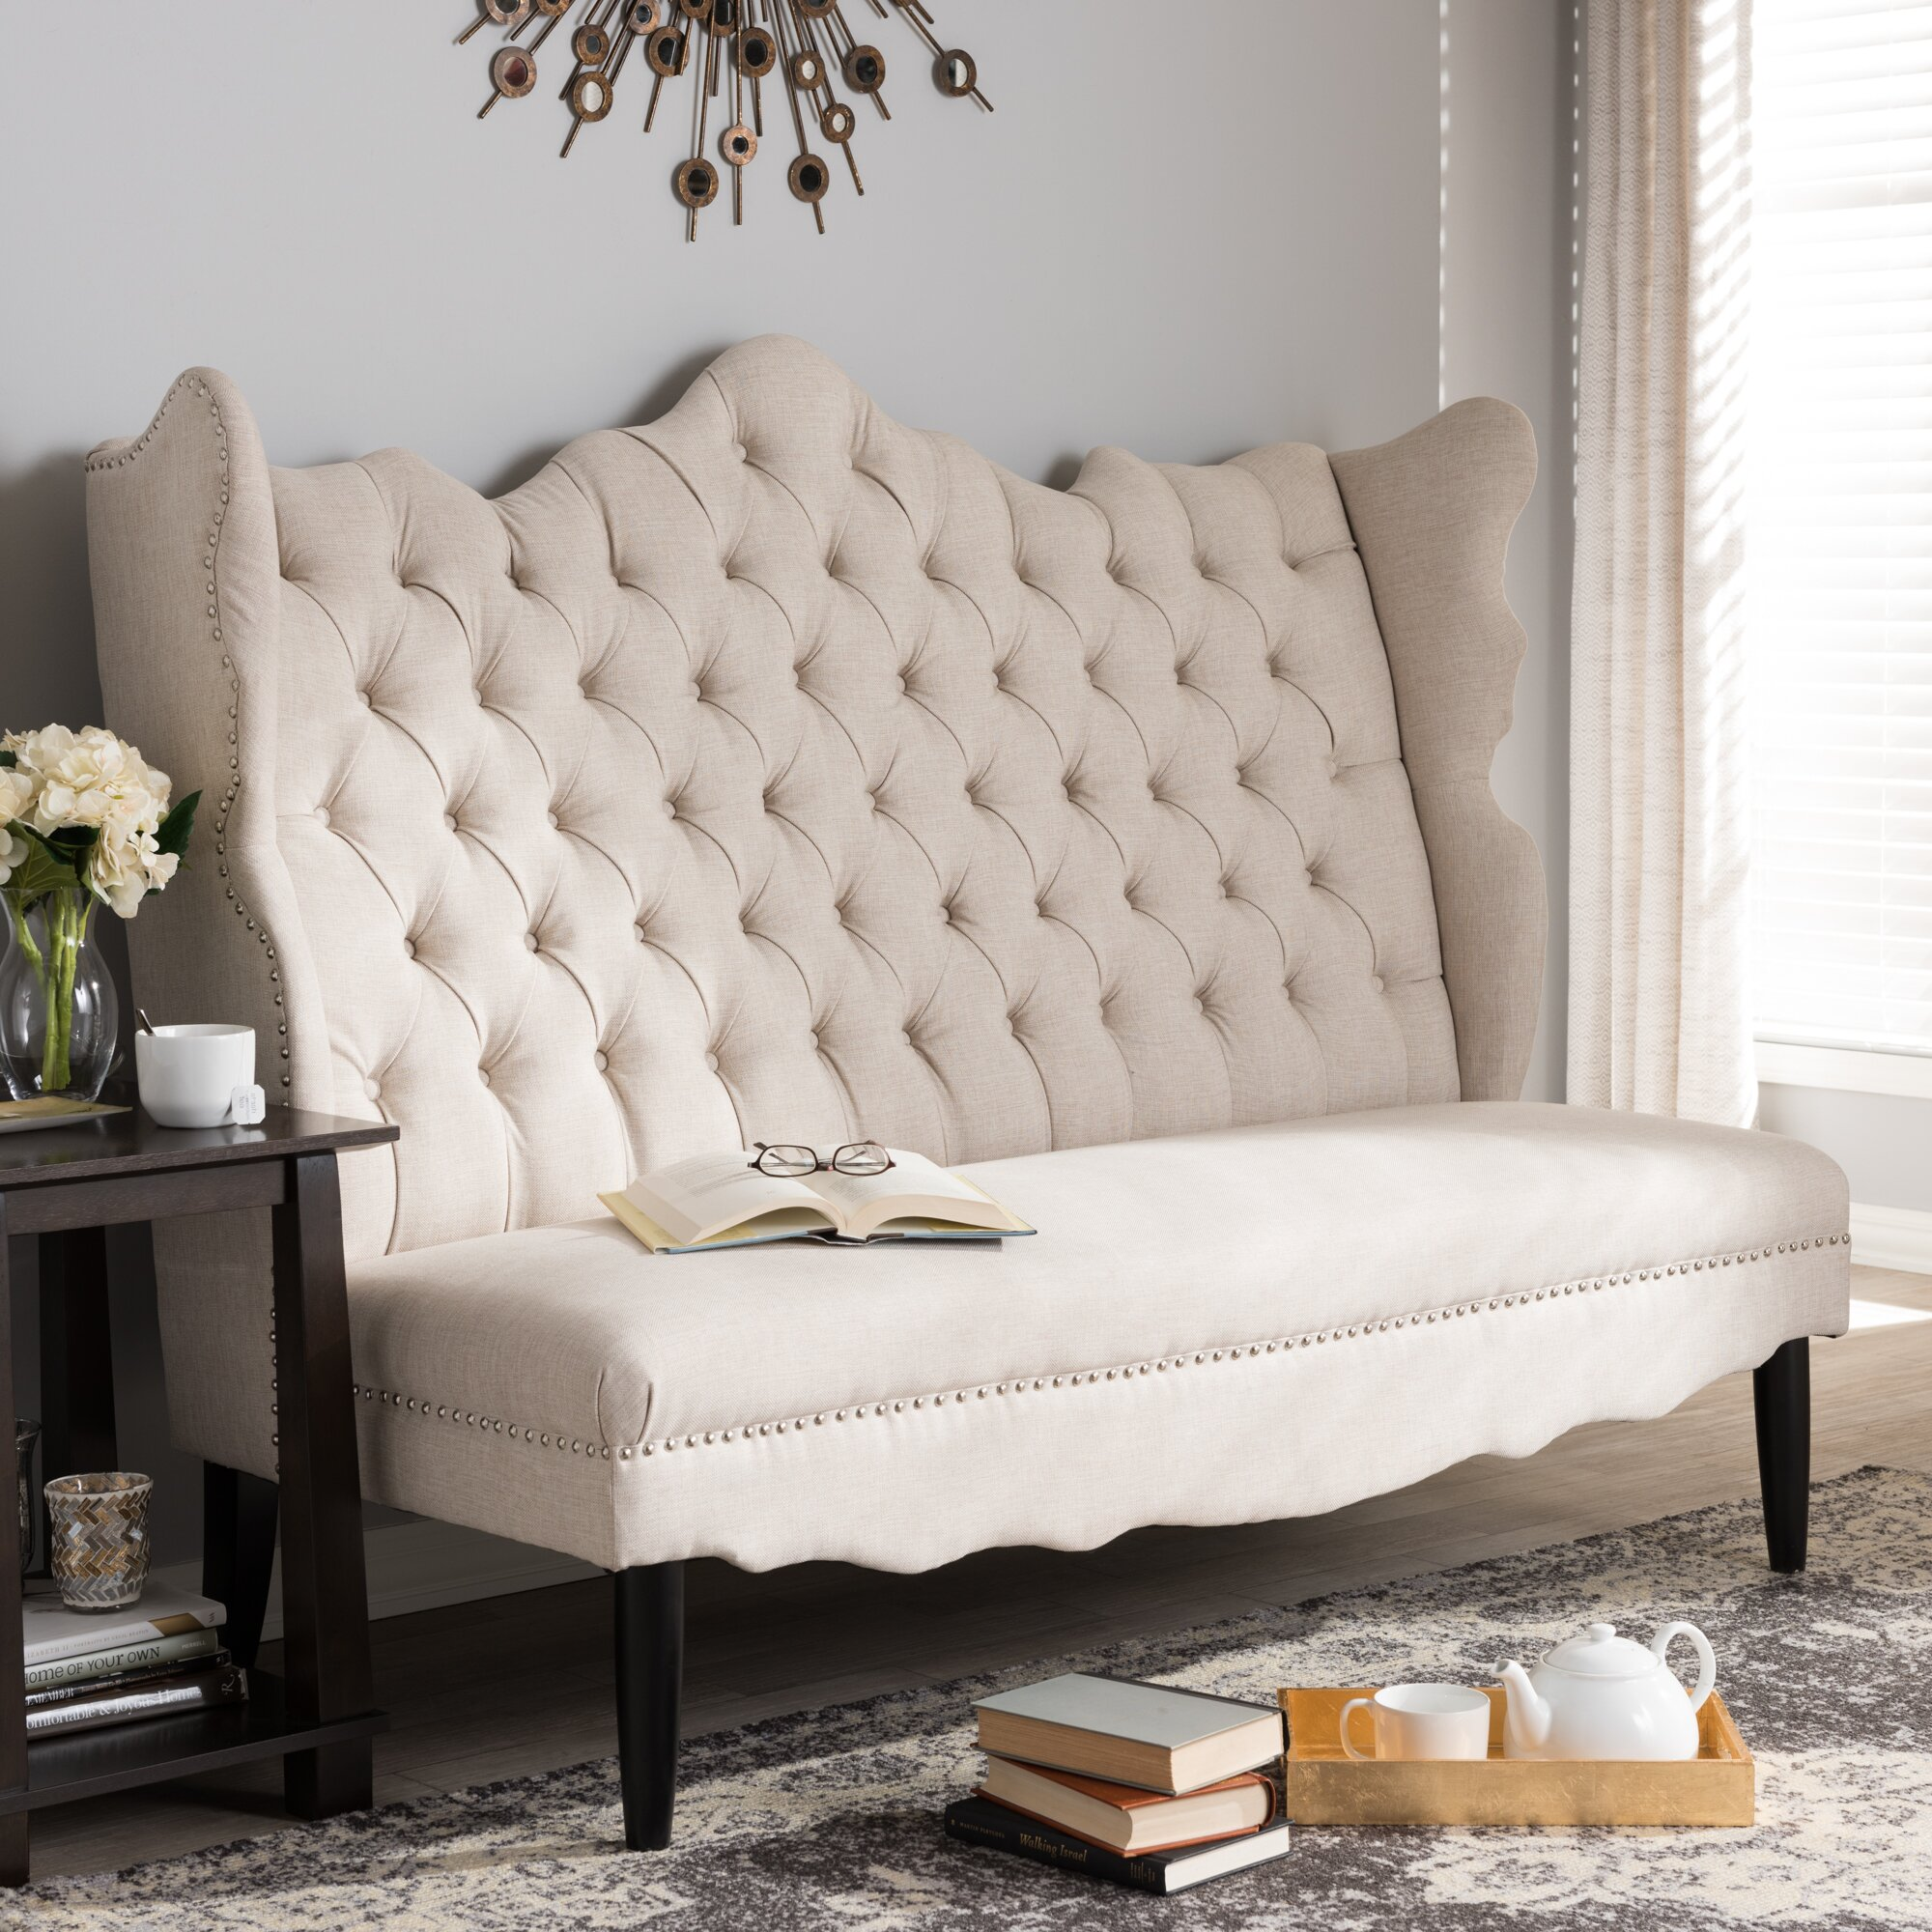 Foyer Settee Bed Bench : Wholesale interiors baxton studio samantha quot tufted